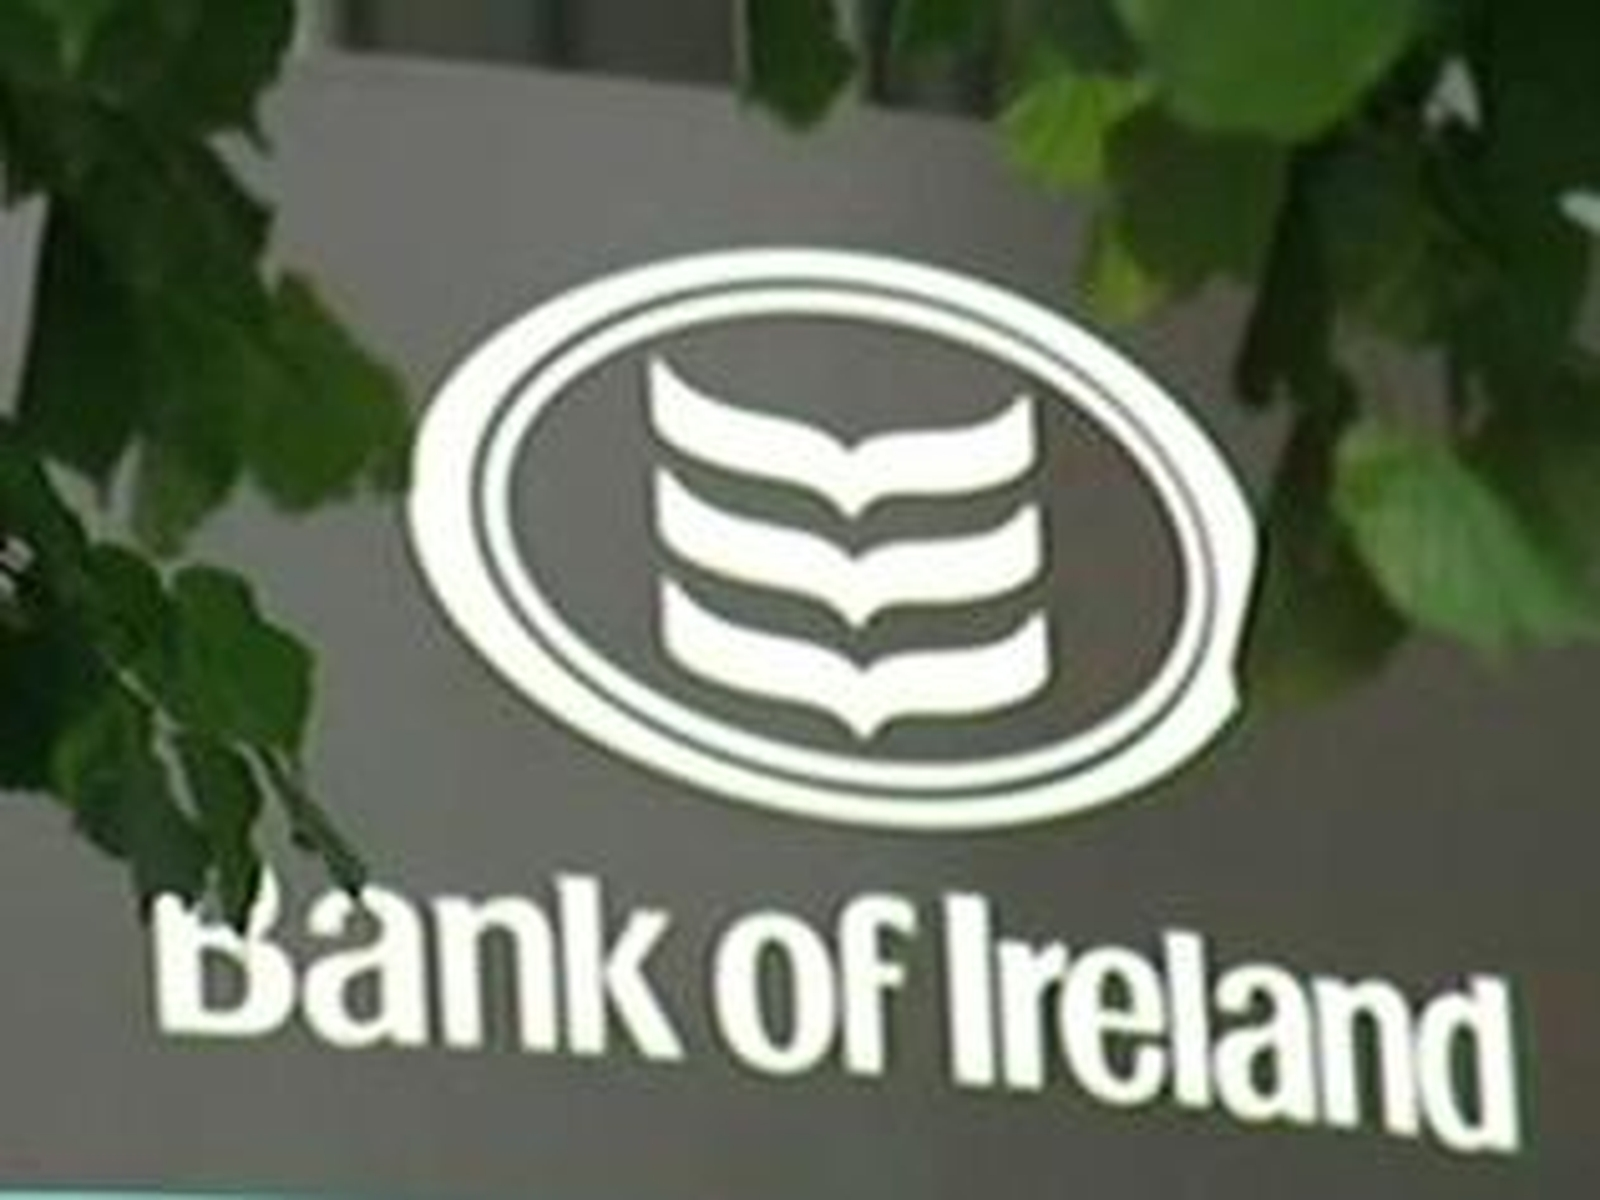 Bank Of Ireland UK Mortgage Online Payment Options At Mortgageapplicationservice